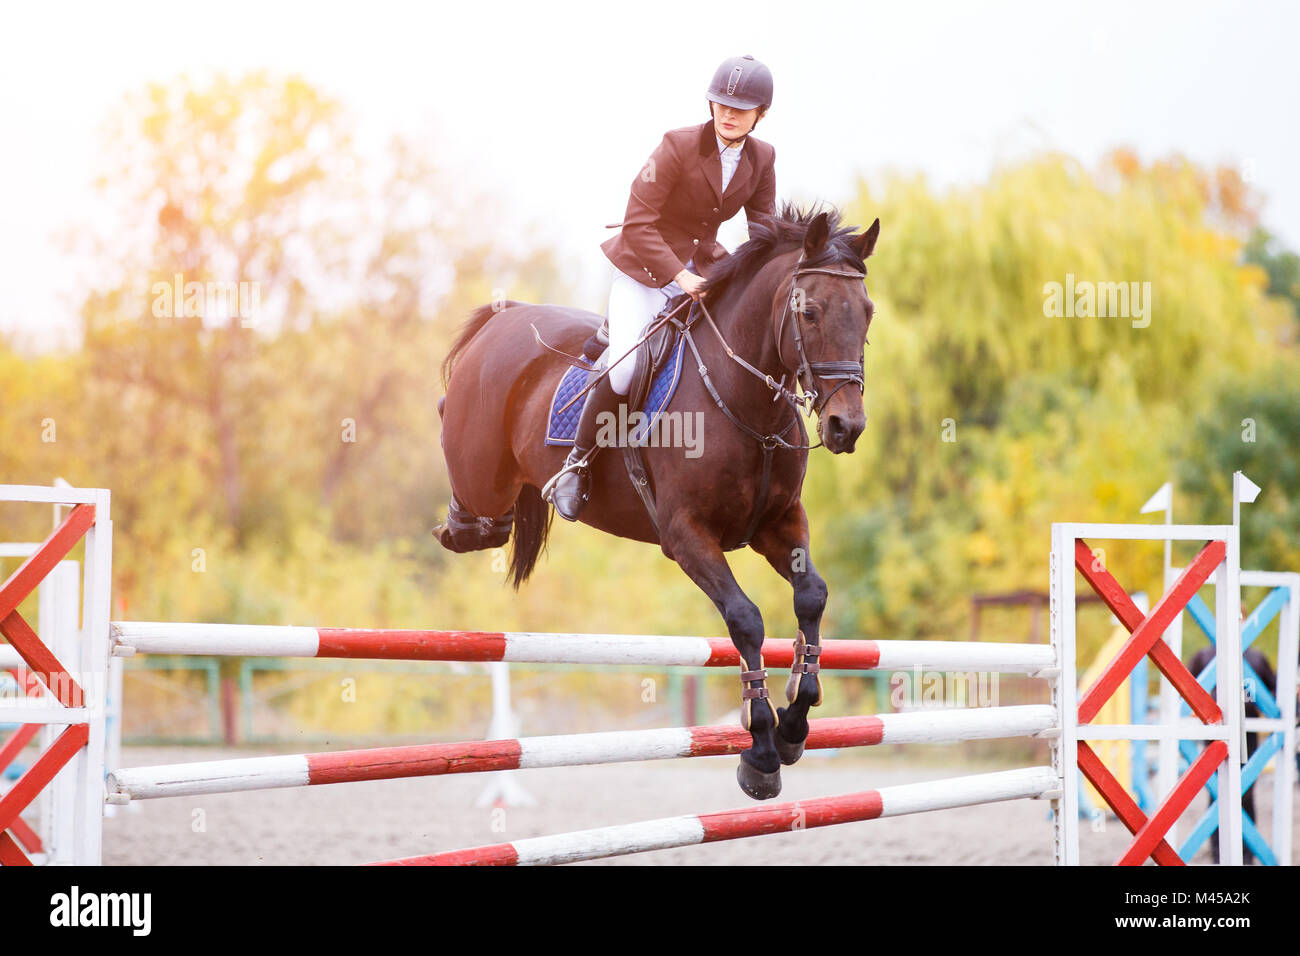 Young rider girl on bay horse jumping over barrier on equestrian sport competition. Horseback girl on show jumping - Stock Image